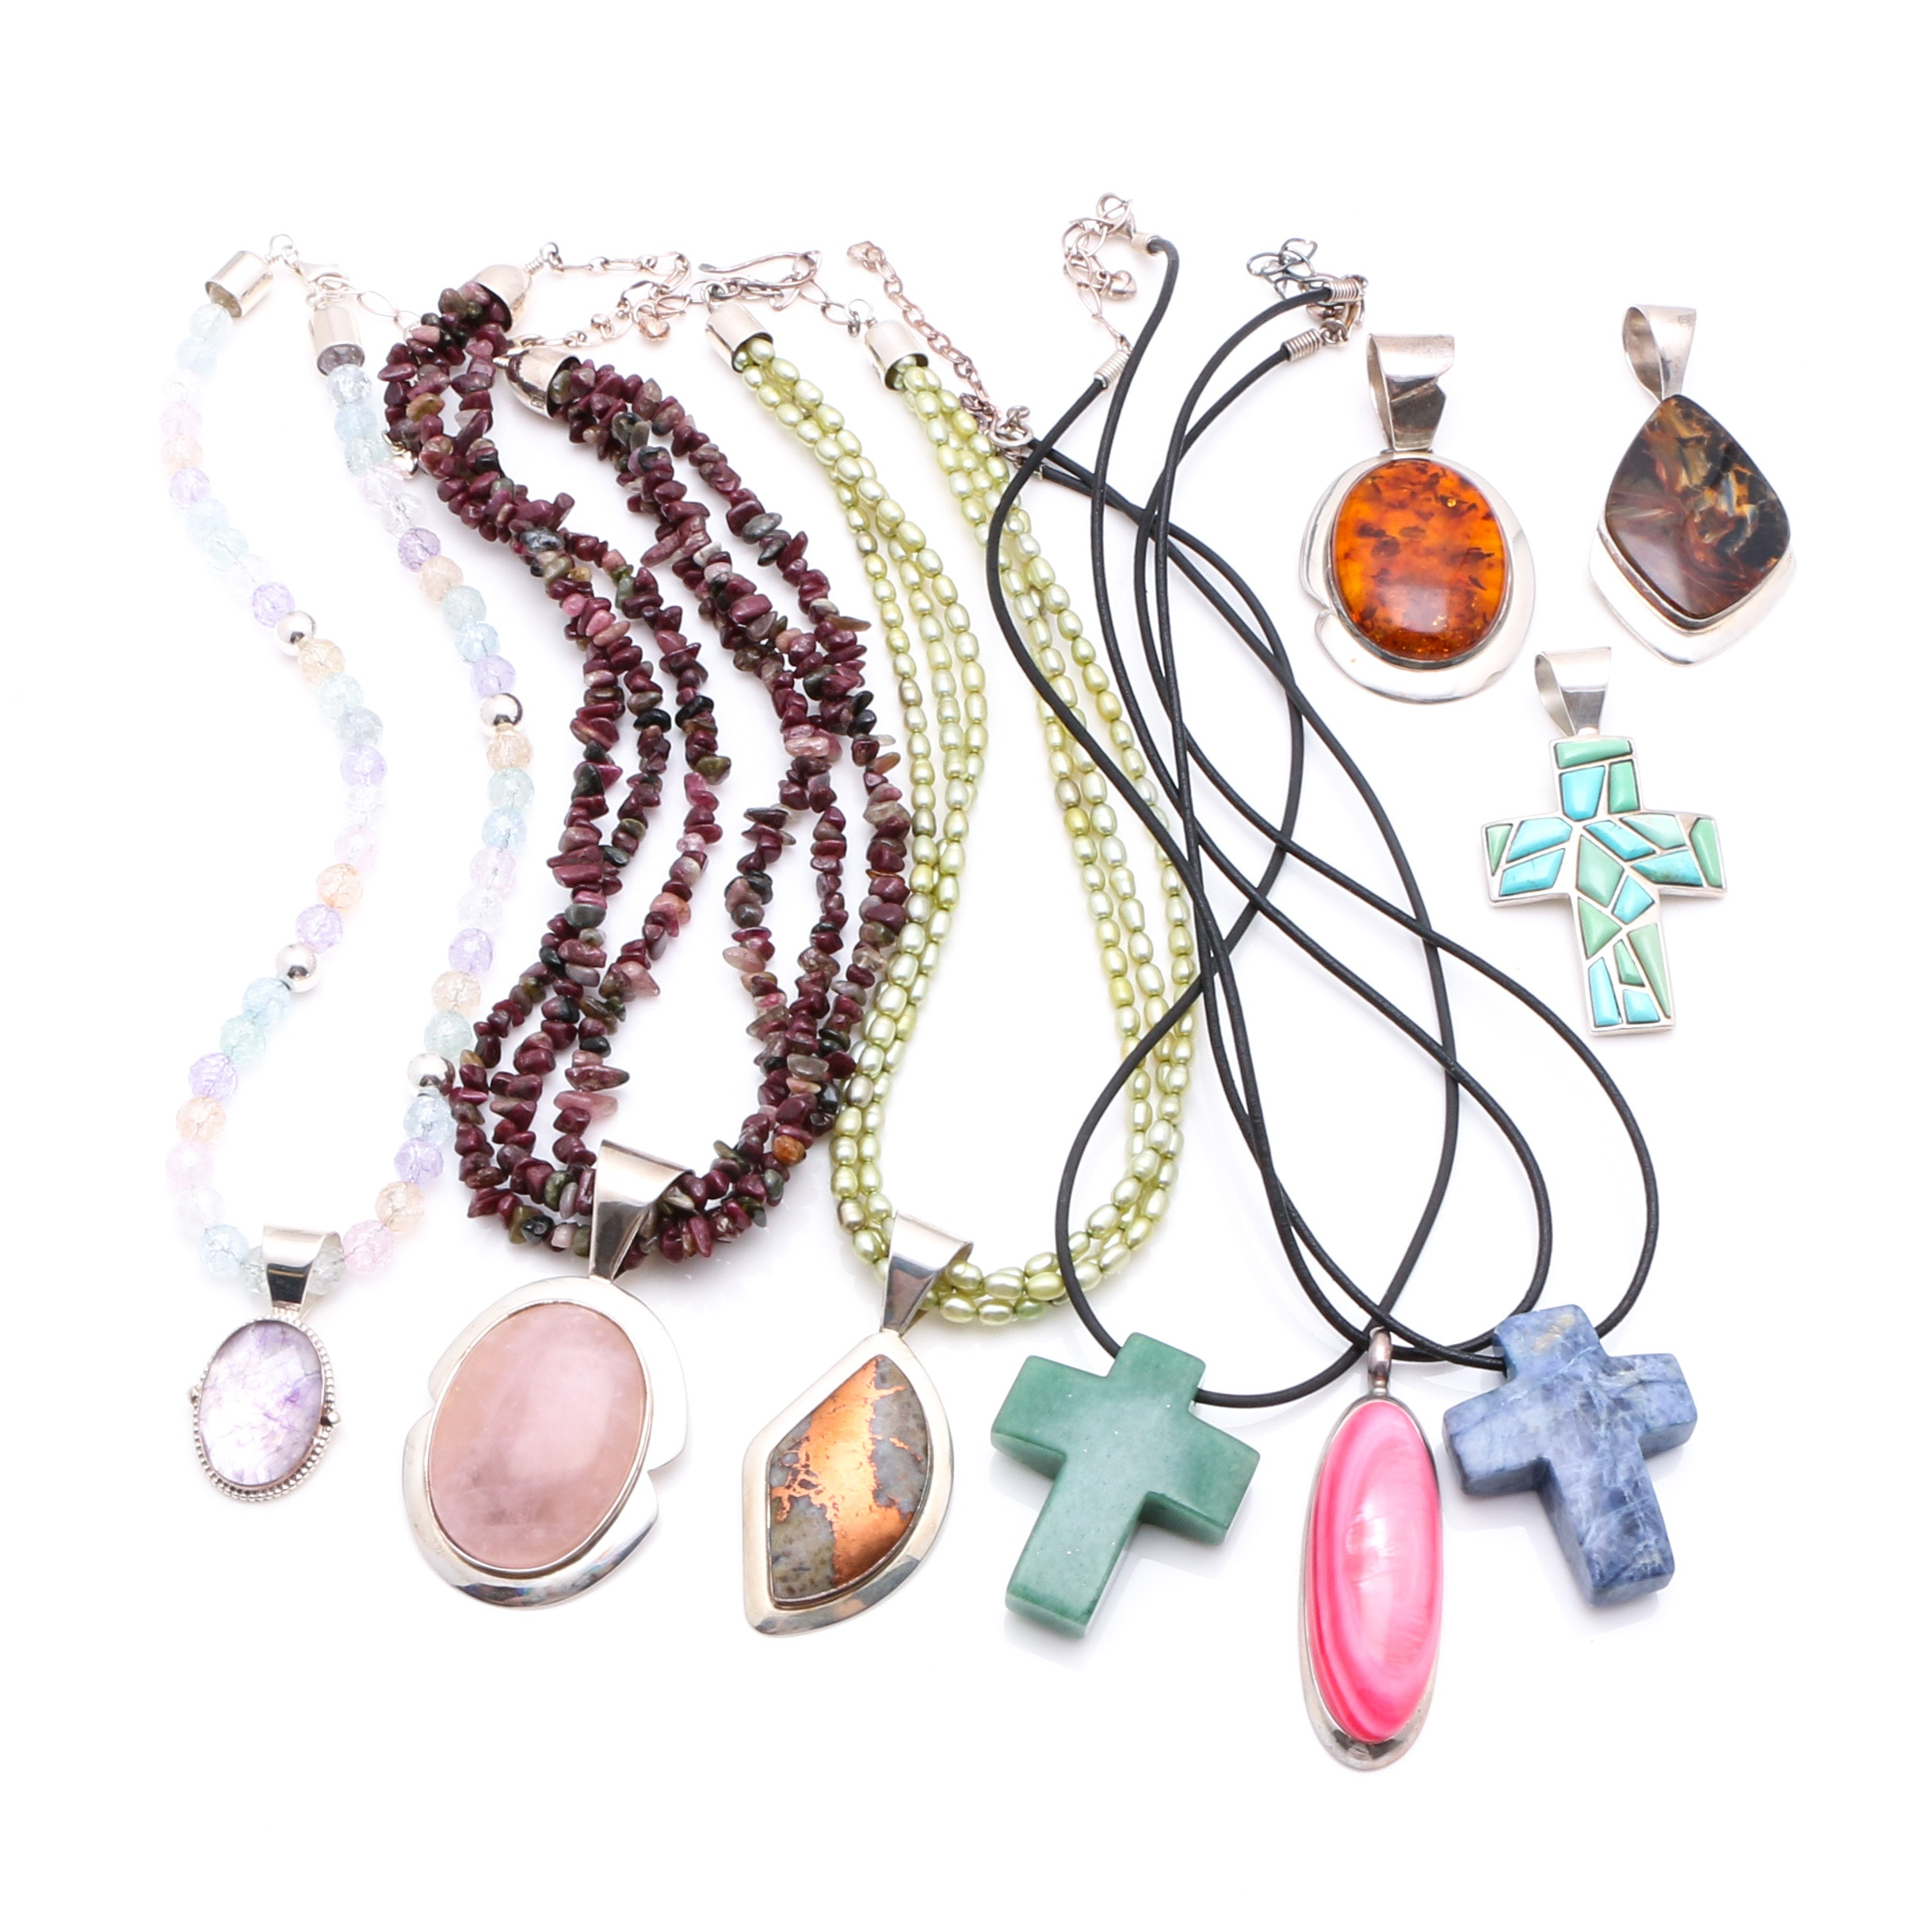 Assortment of Sterling and Stone Necklaces and Pendants featuring Jay King